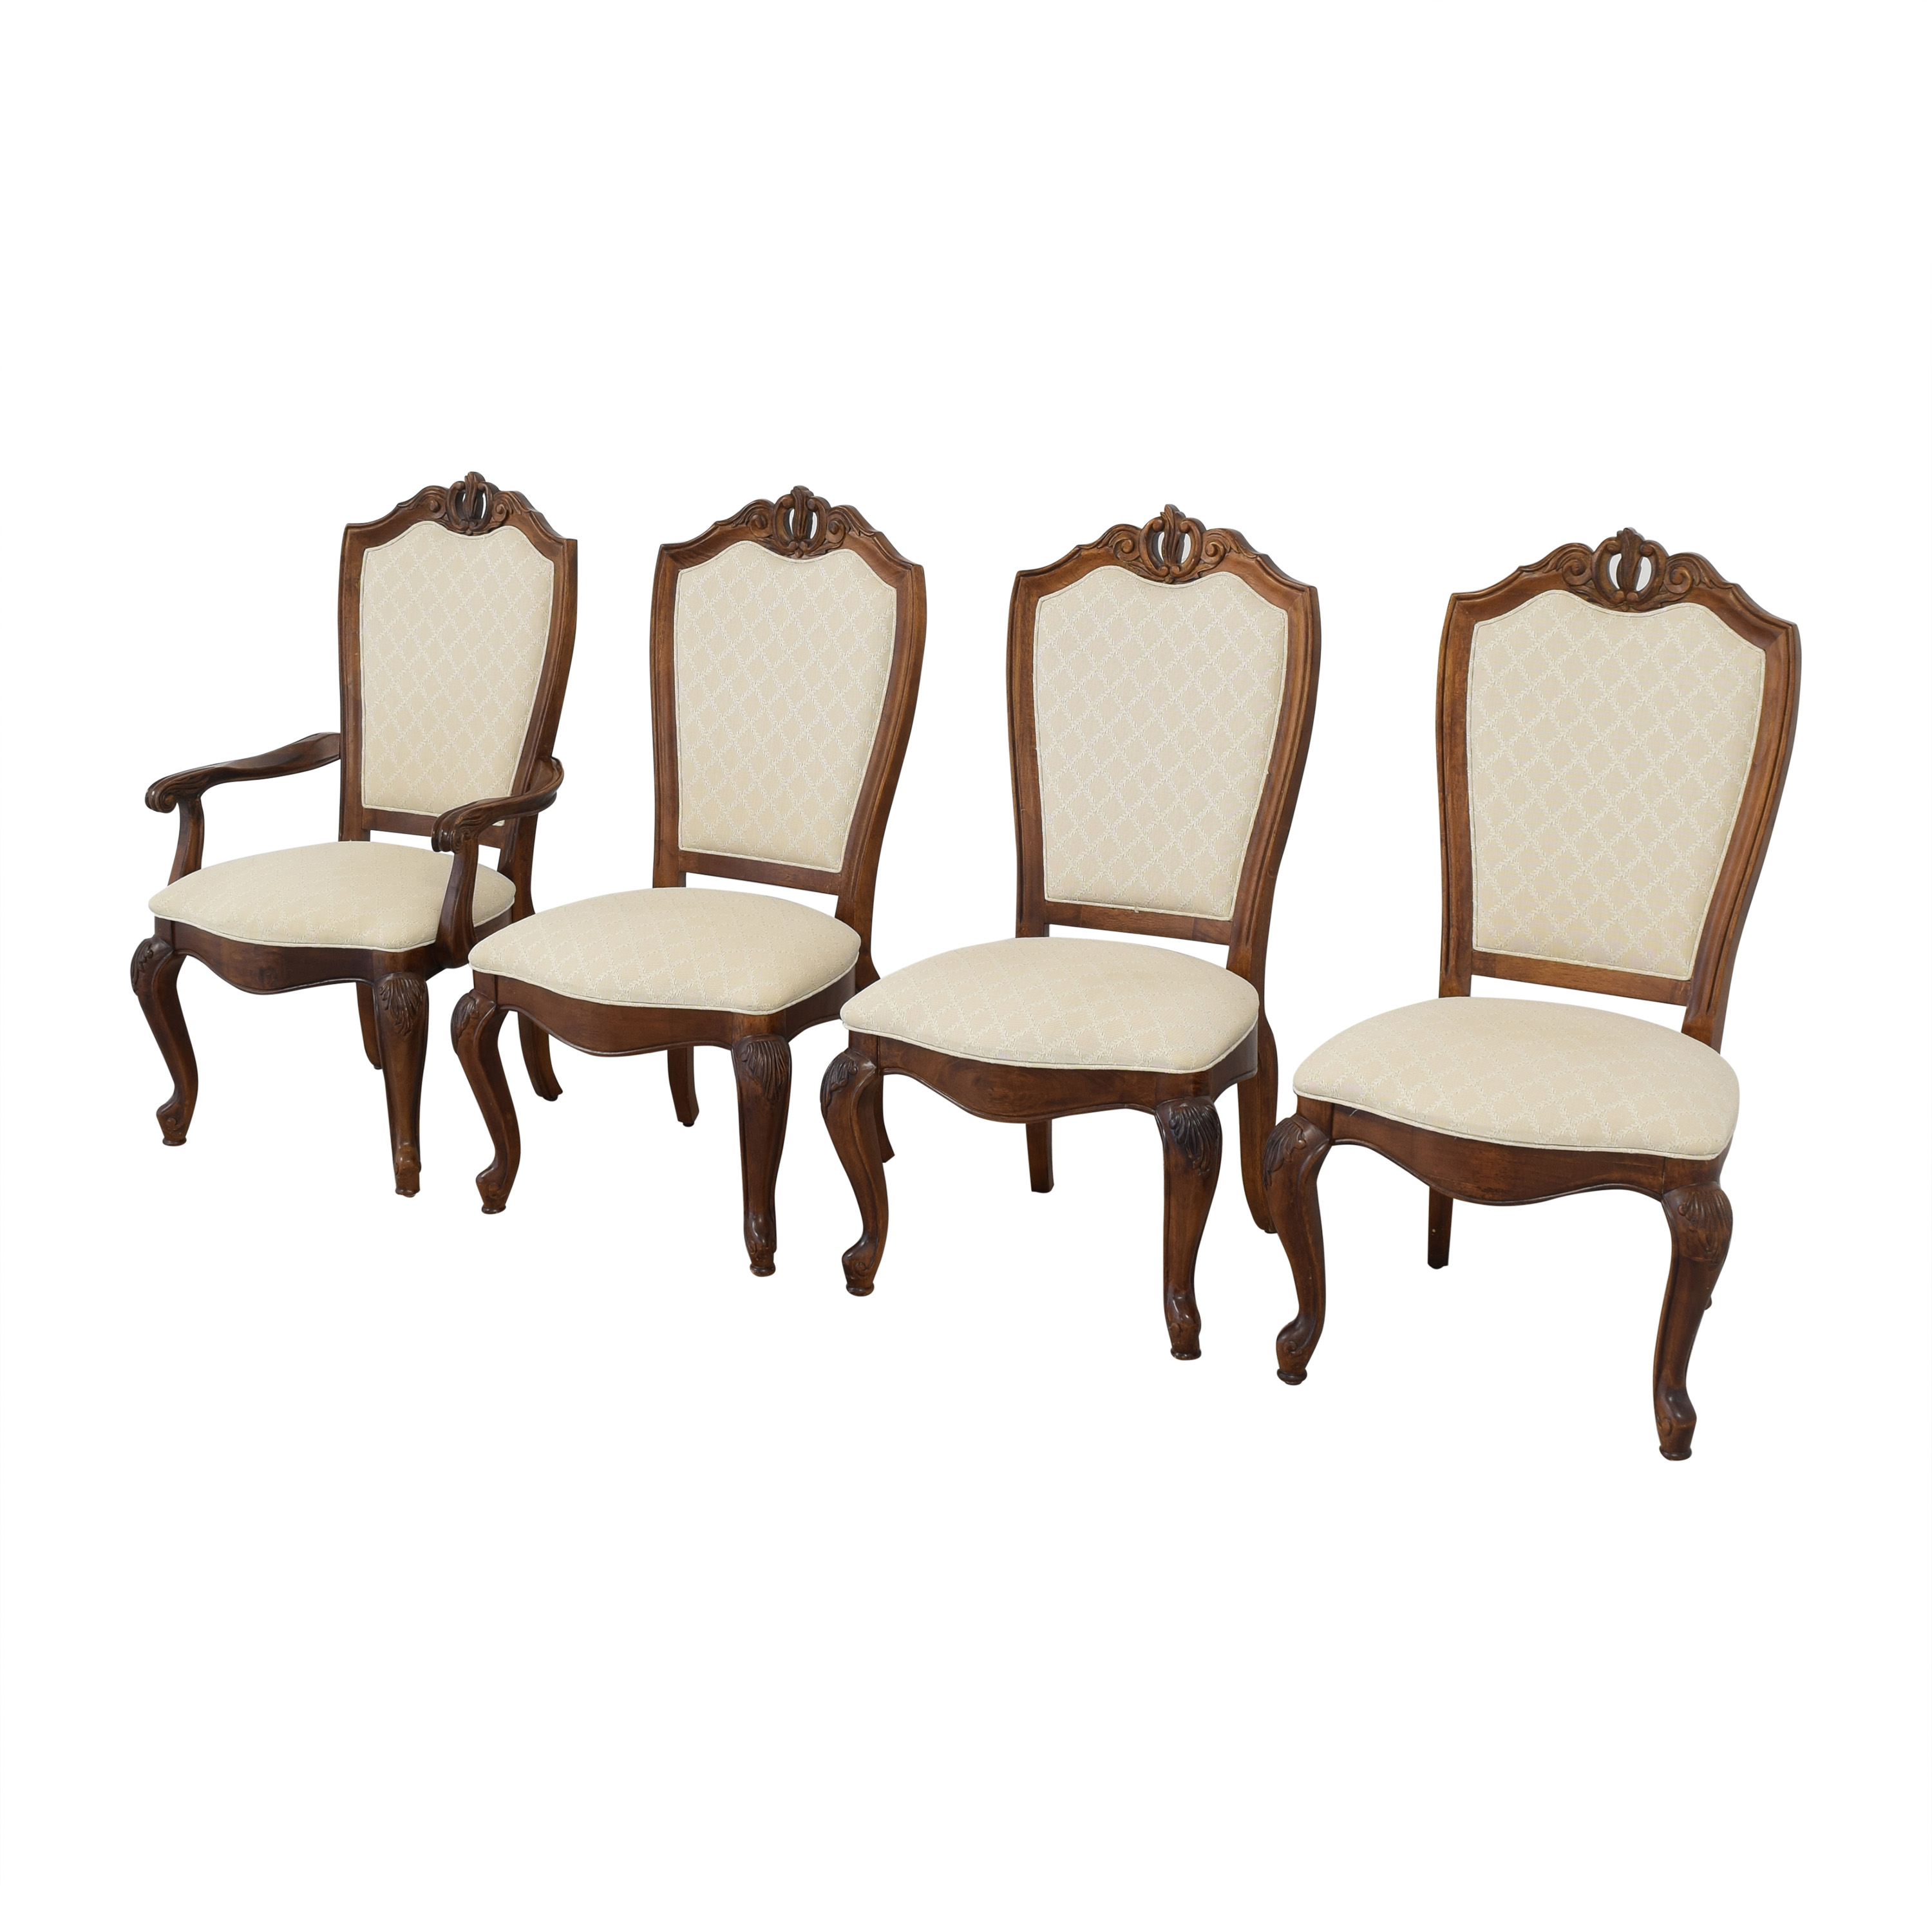 American Drew Bob Mackie for American Drew Dining Chairs ct